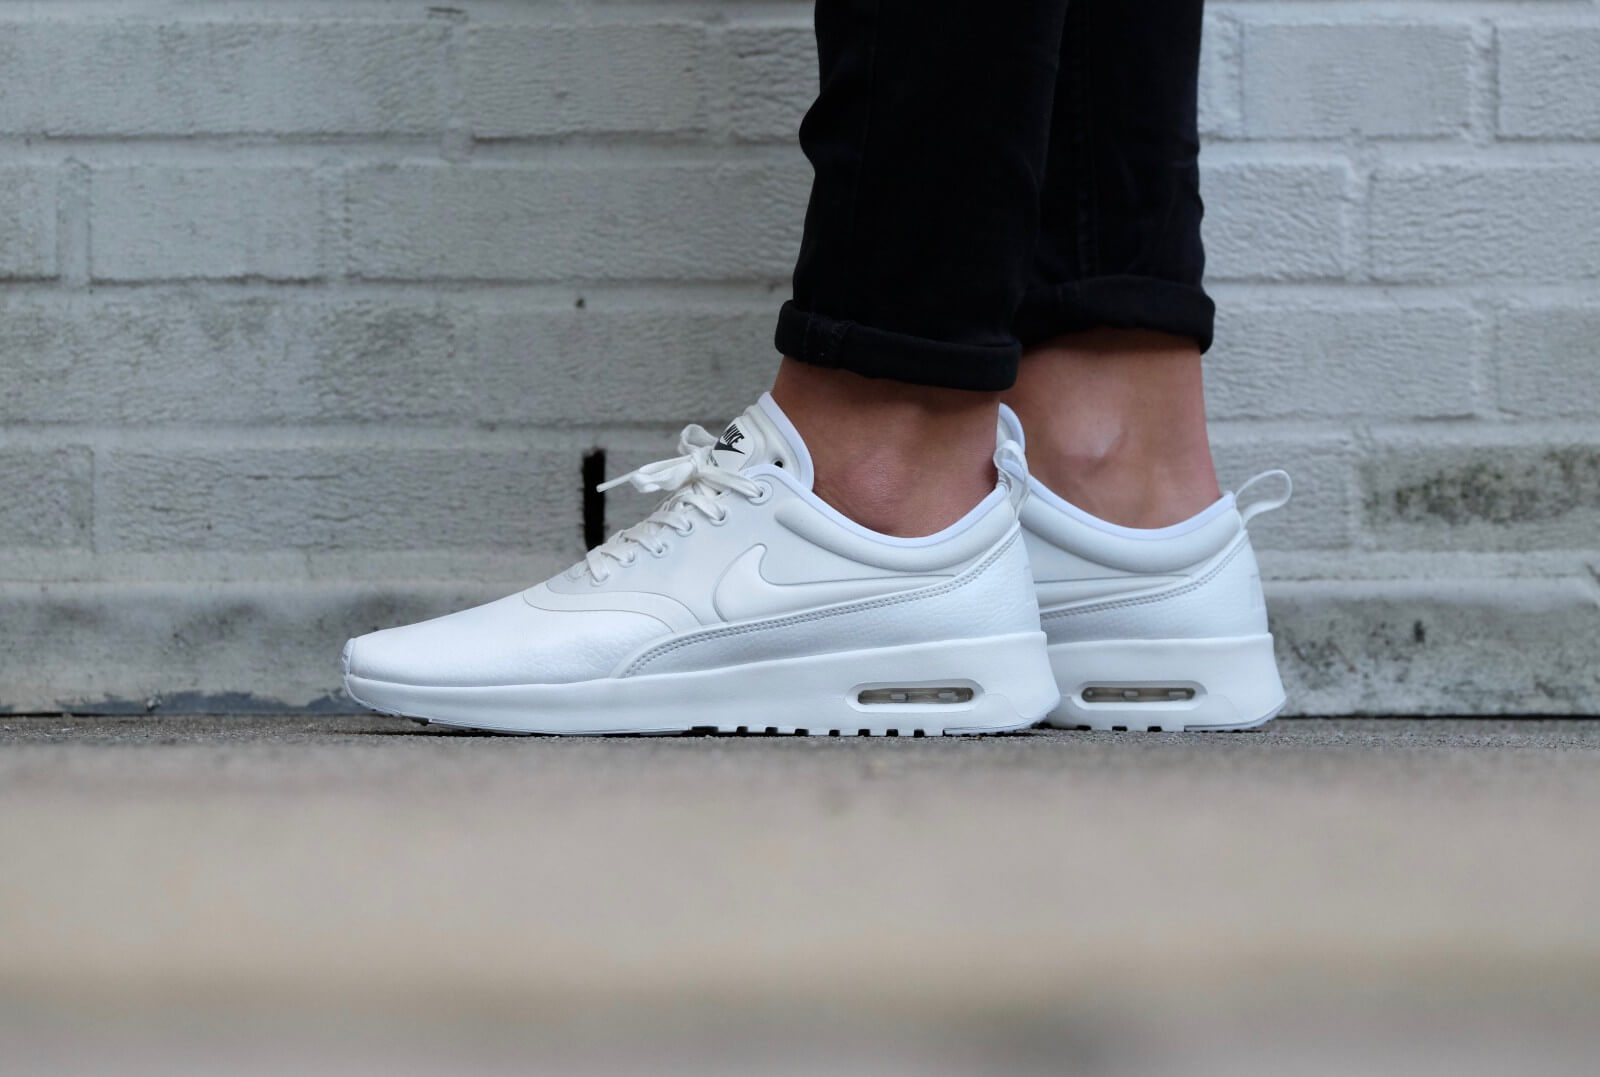 Nike Air Max Thea, Nike, Shoes Shipped Free at Zappos